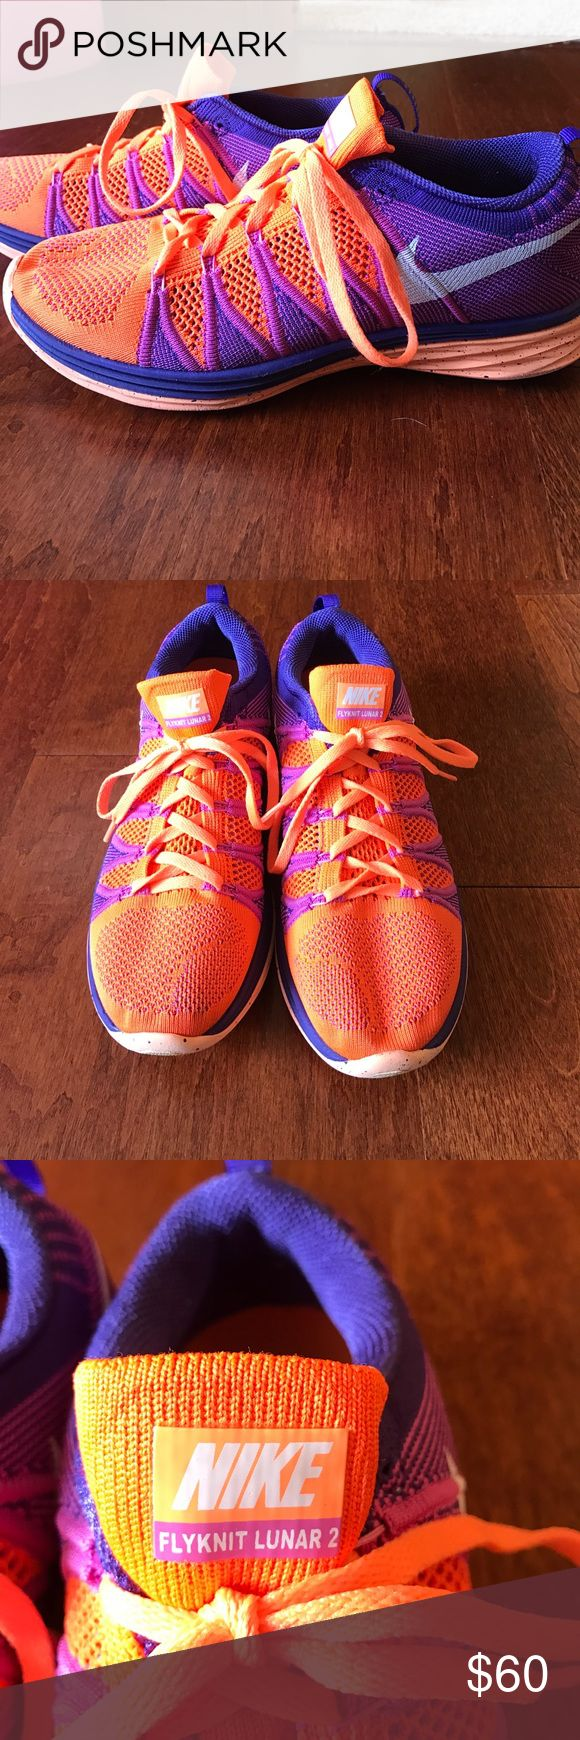 Orange and Purple women's Nike flyknit lunar 2 Women's Nike Flyknit Lunar 2 sneaker! The shoes are shades of orange and purple. They are in brand new condition! Size 9. Nike Shoes Sneakers